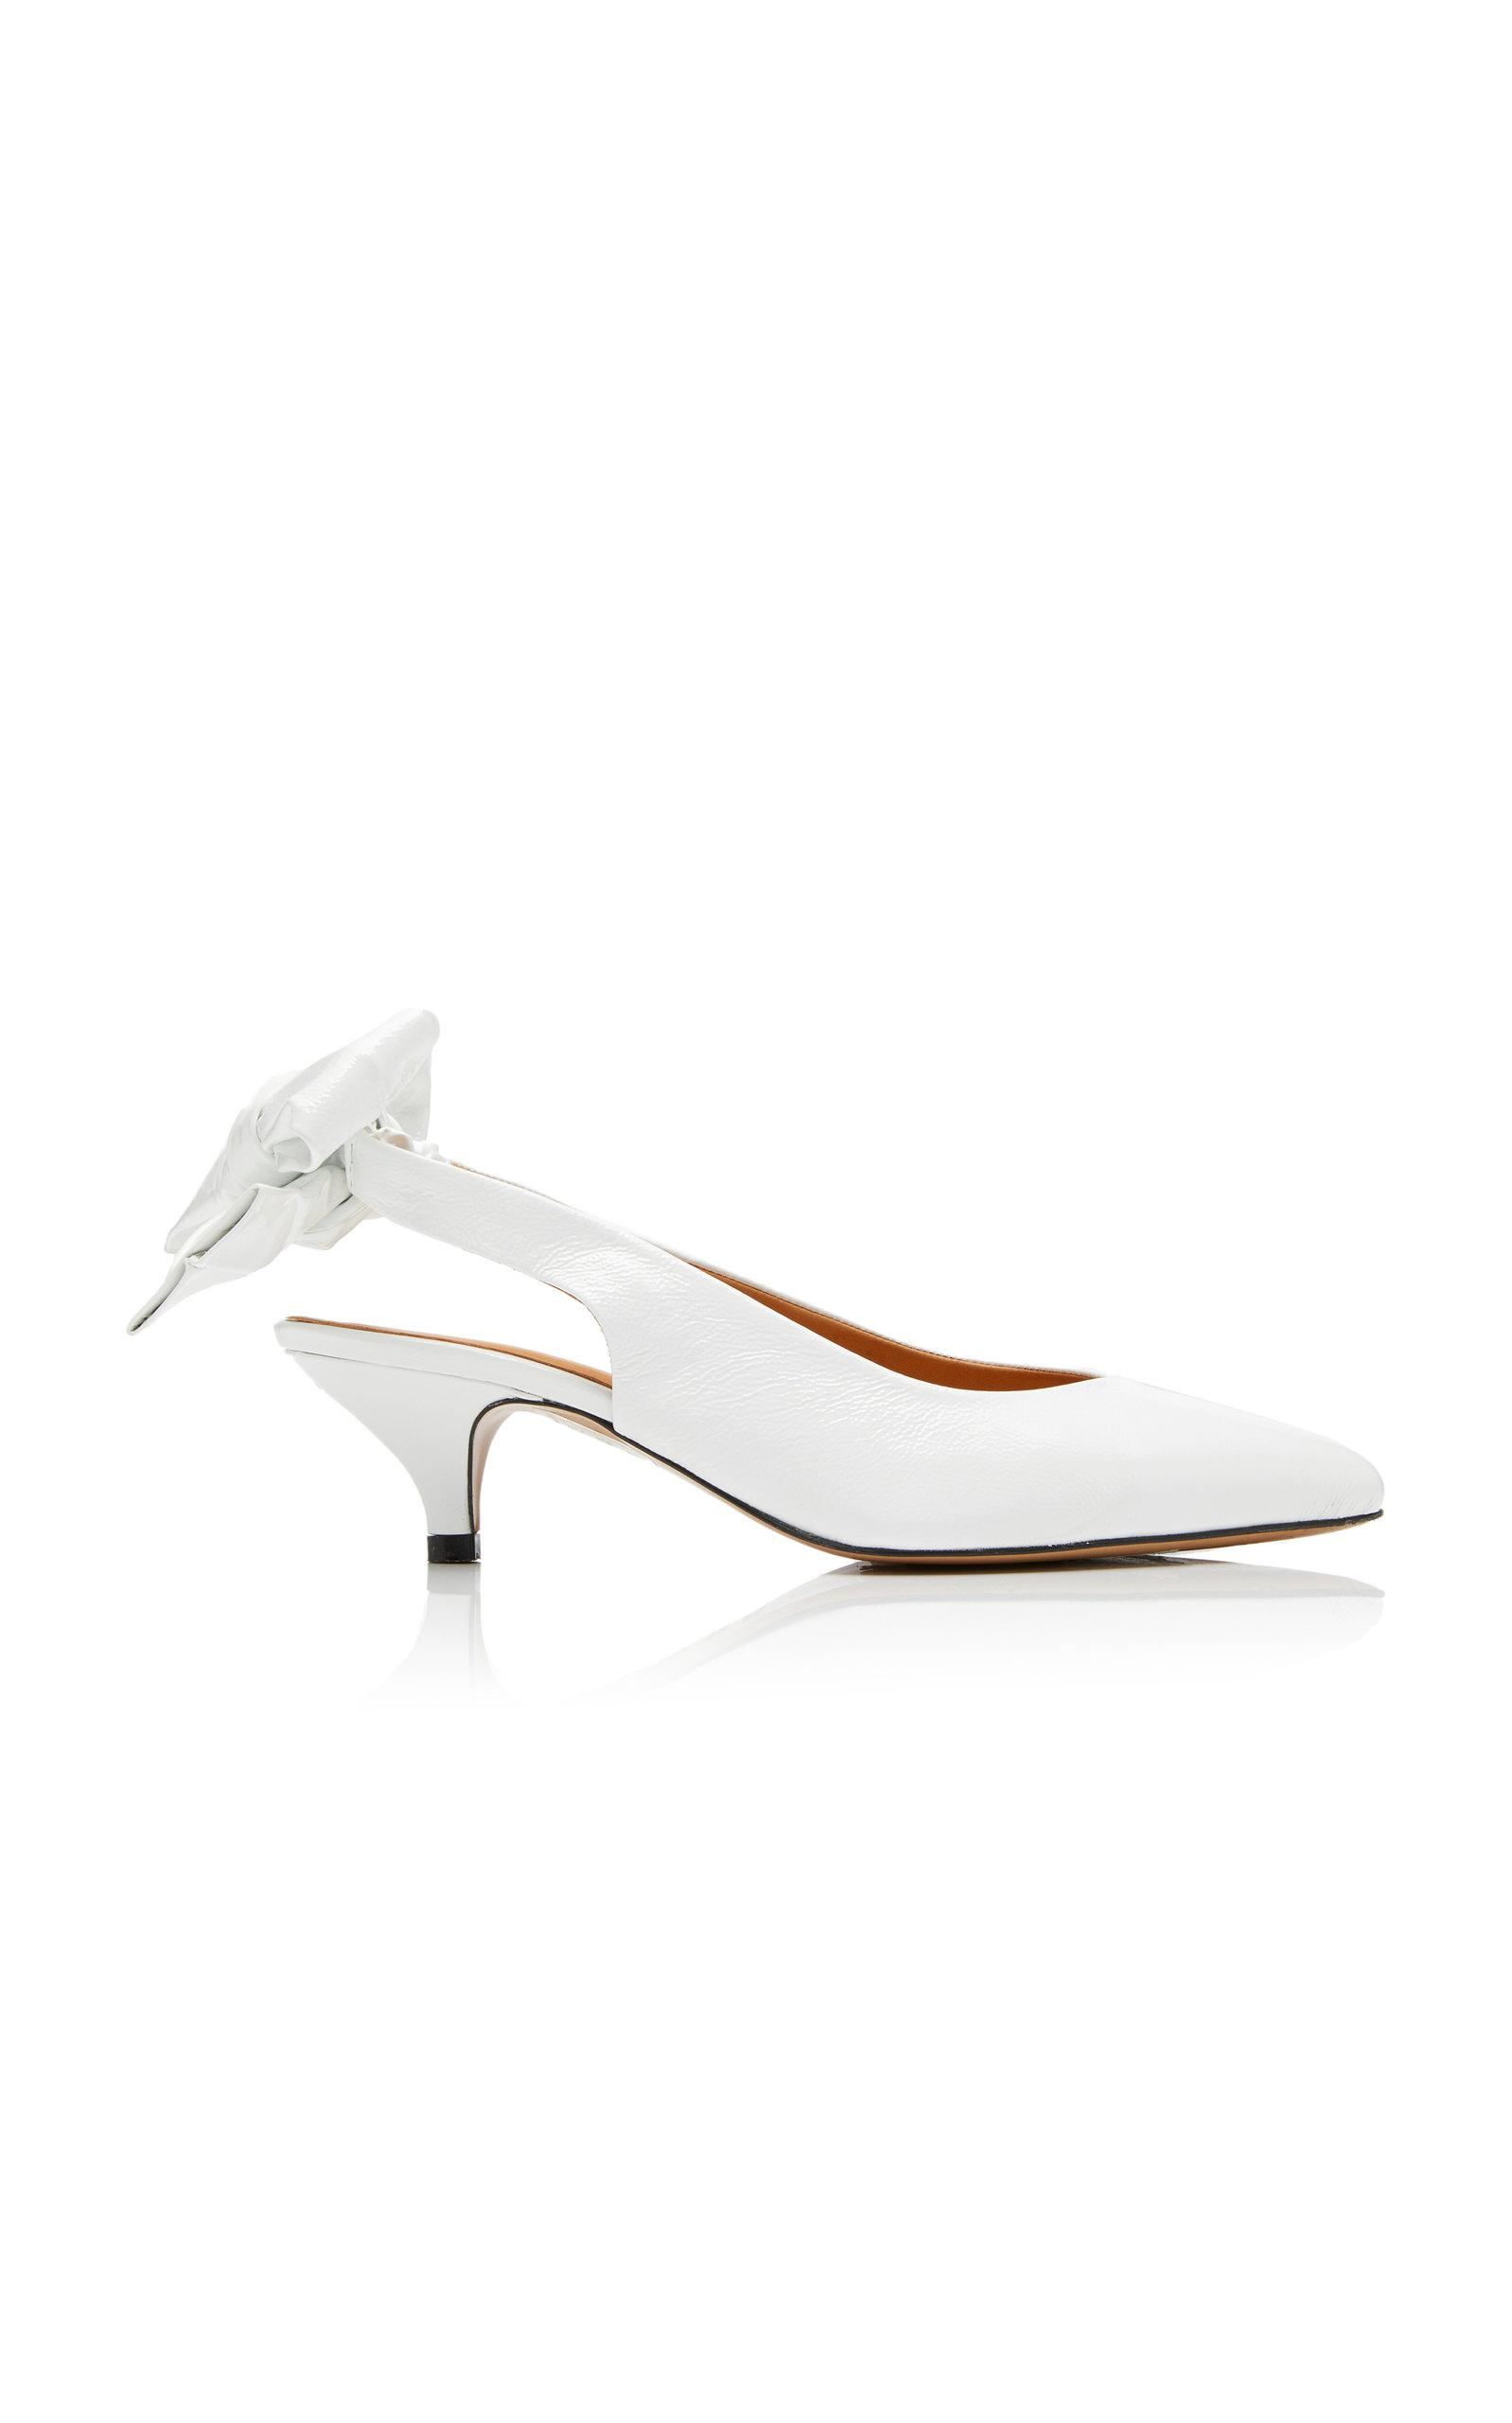 daf626103cd Ganni Bow-detailed Leather Slingback Pumps in White - Save 40% - Lyst